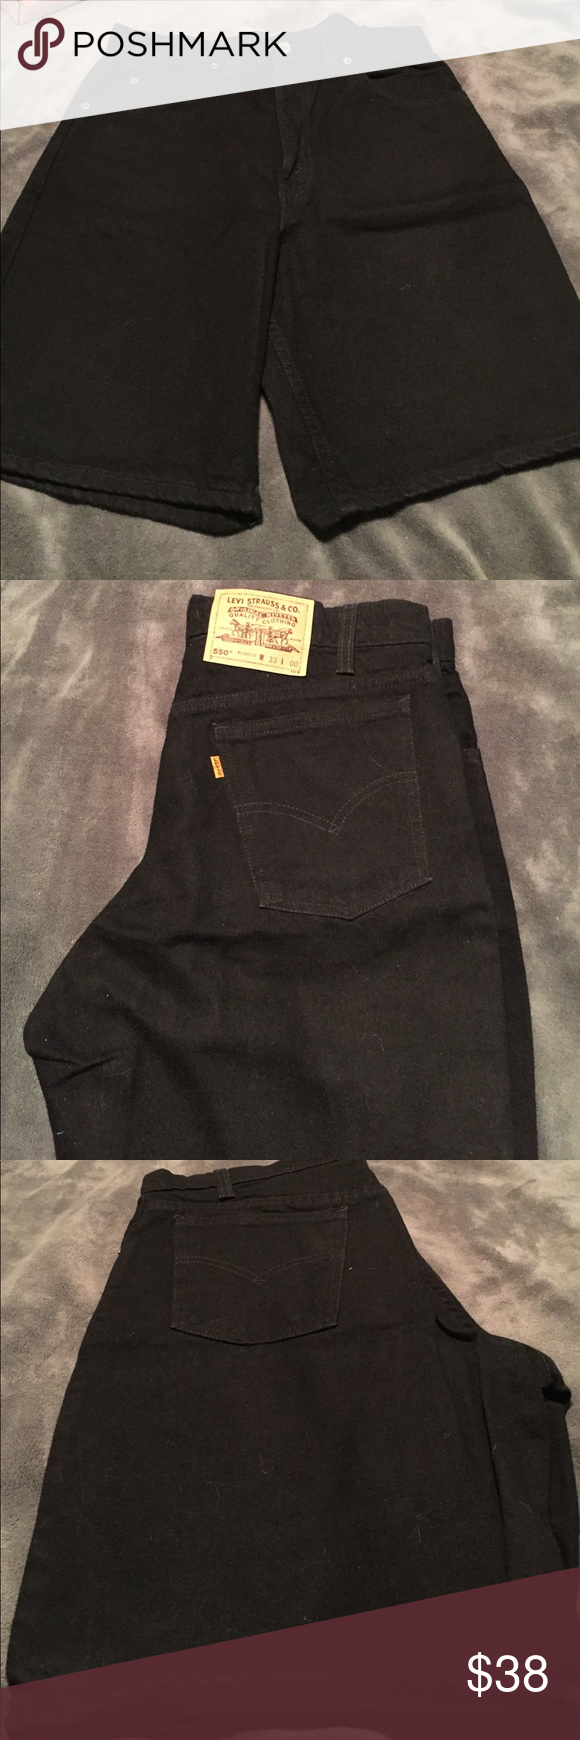 "Men's Vintage Levi Relaxed Fit  550 Denim Shorts Men's Black Levi 550 Shorts.    Relaxed Fit.     Waist -- 33"".    Length  -- 00.                              I measured length at --20"".                            .       Never Worn Relaxed Levi Shorts.       Vintage Levi's Levi's Shorts Jean Shorts"